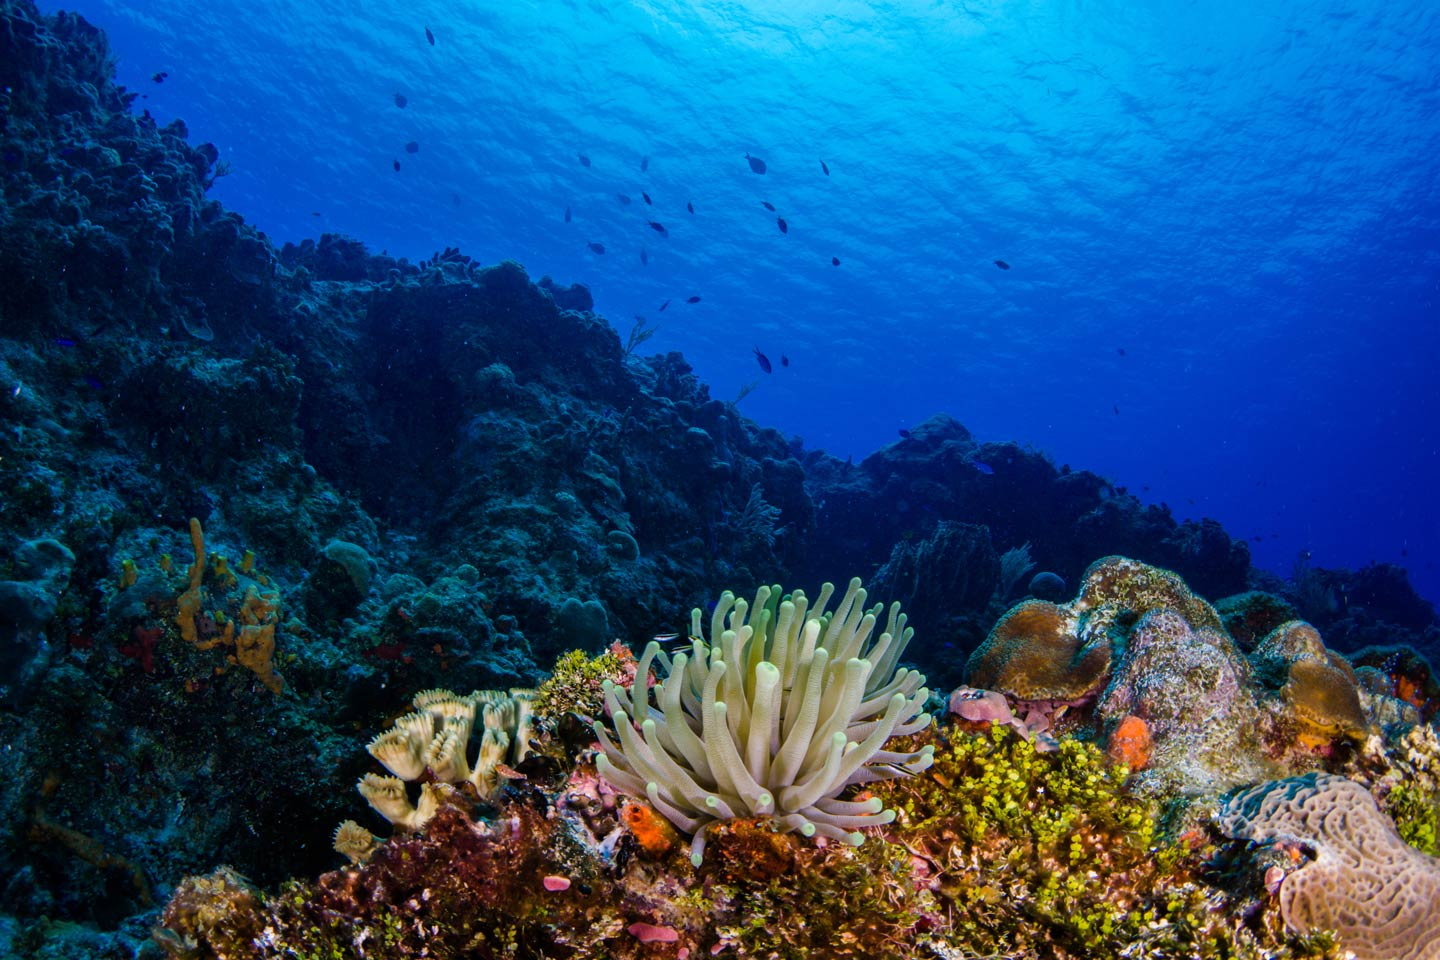 An underwater view of the Mesoamerican Reef showing coral, underwater wildlife, and the reef